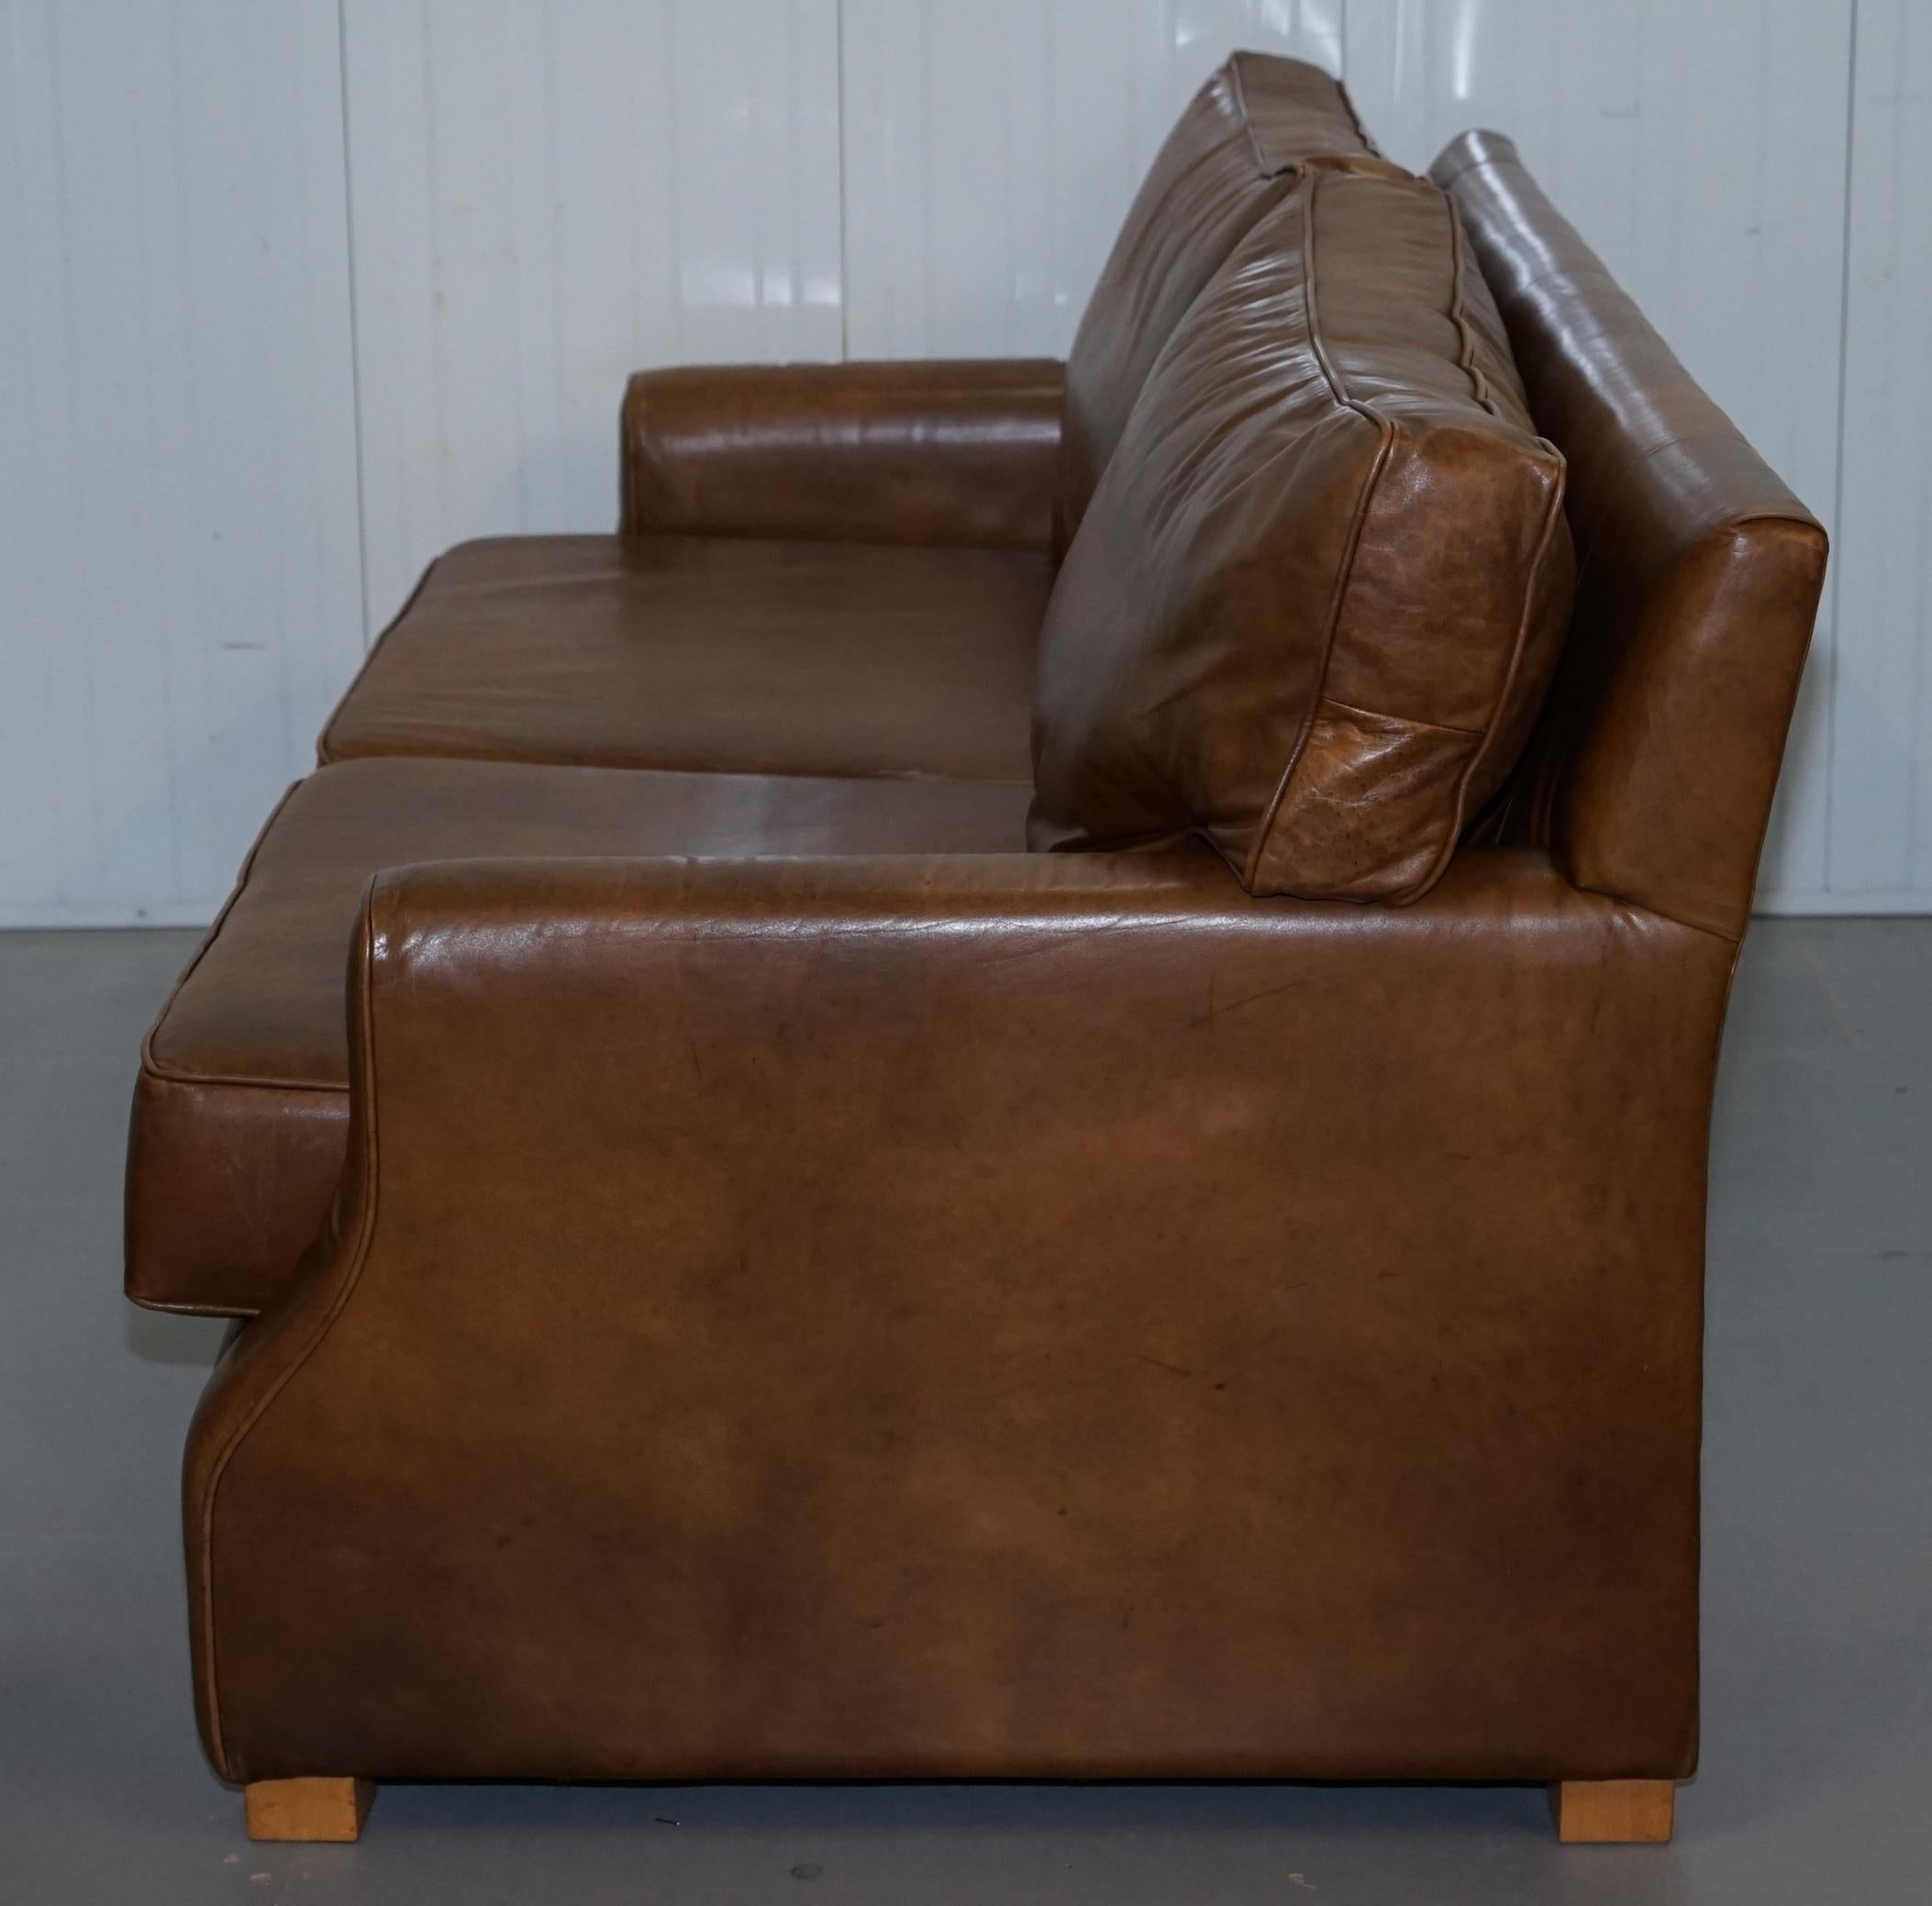 Antiques Aged Vintage Heritage Brown Leather Three Seater Sofa Duck Feather Cushions 1900-1950